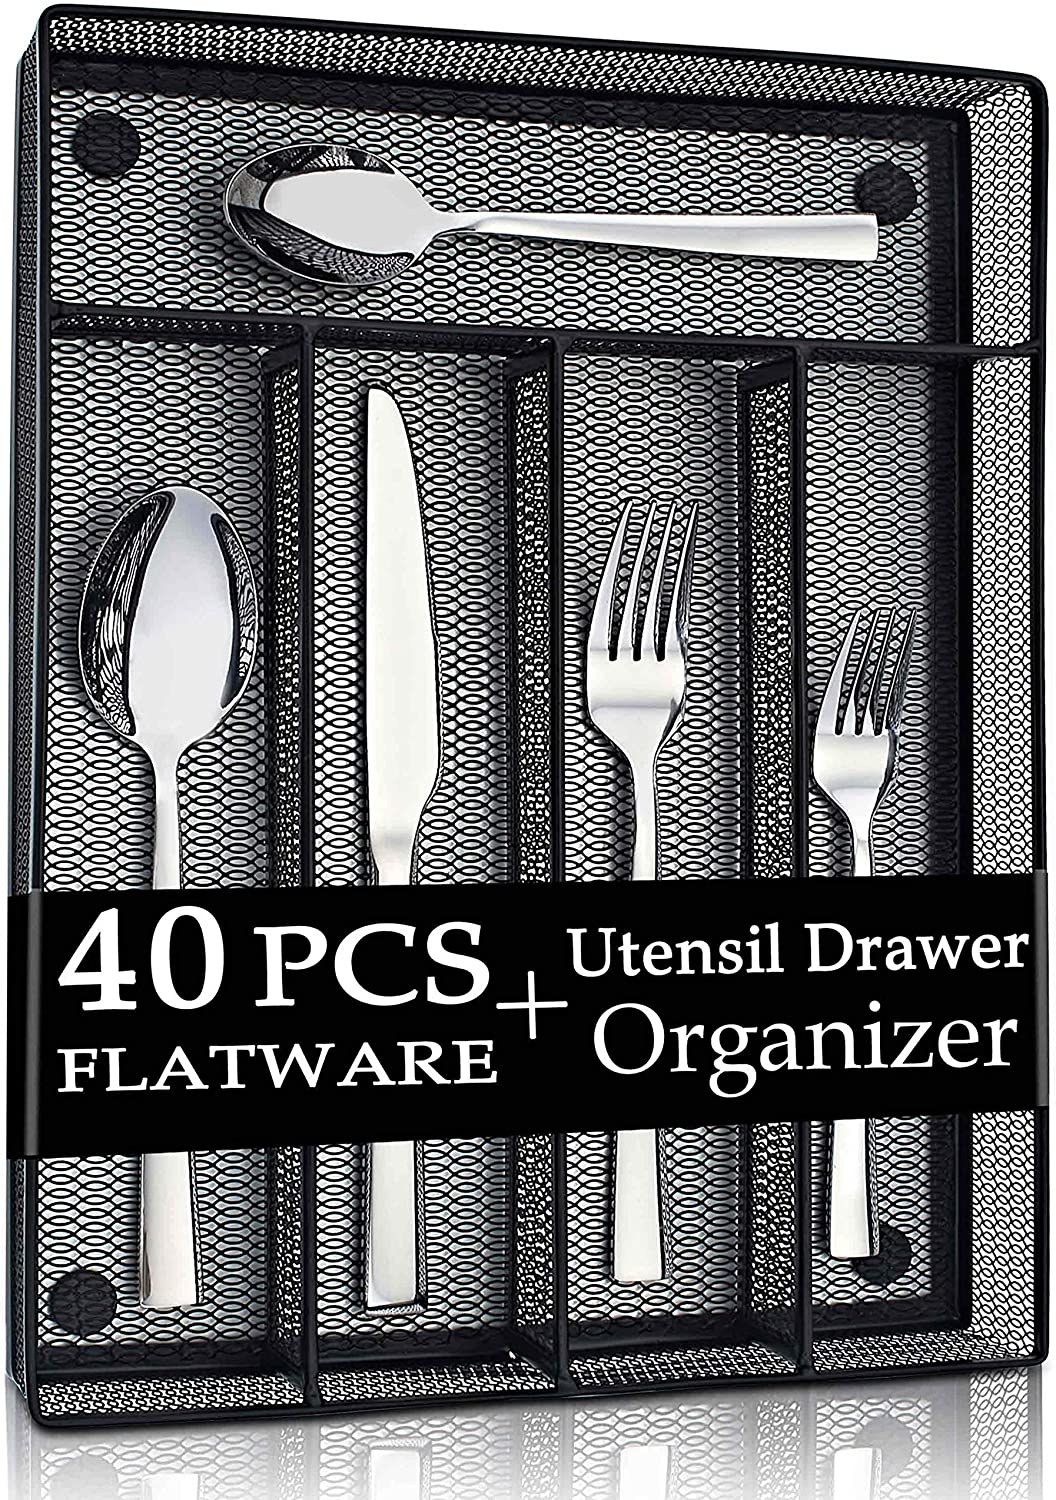 LIANYU 40-Piece Silverware Set with Drawer Organizer, Stainless Steel Square Flatware Cutlery Set for 8, Kitchen Party Restaurant Eating Utensils Tableware, Mirror Polished, Dishwasher Safe